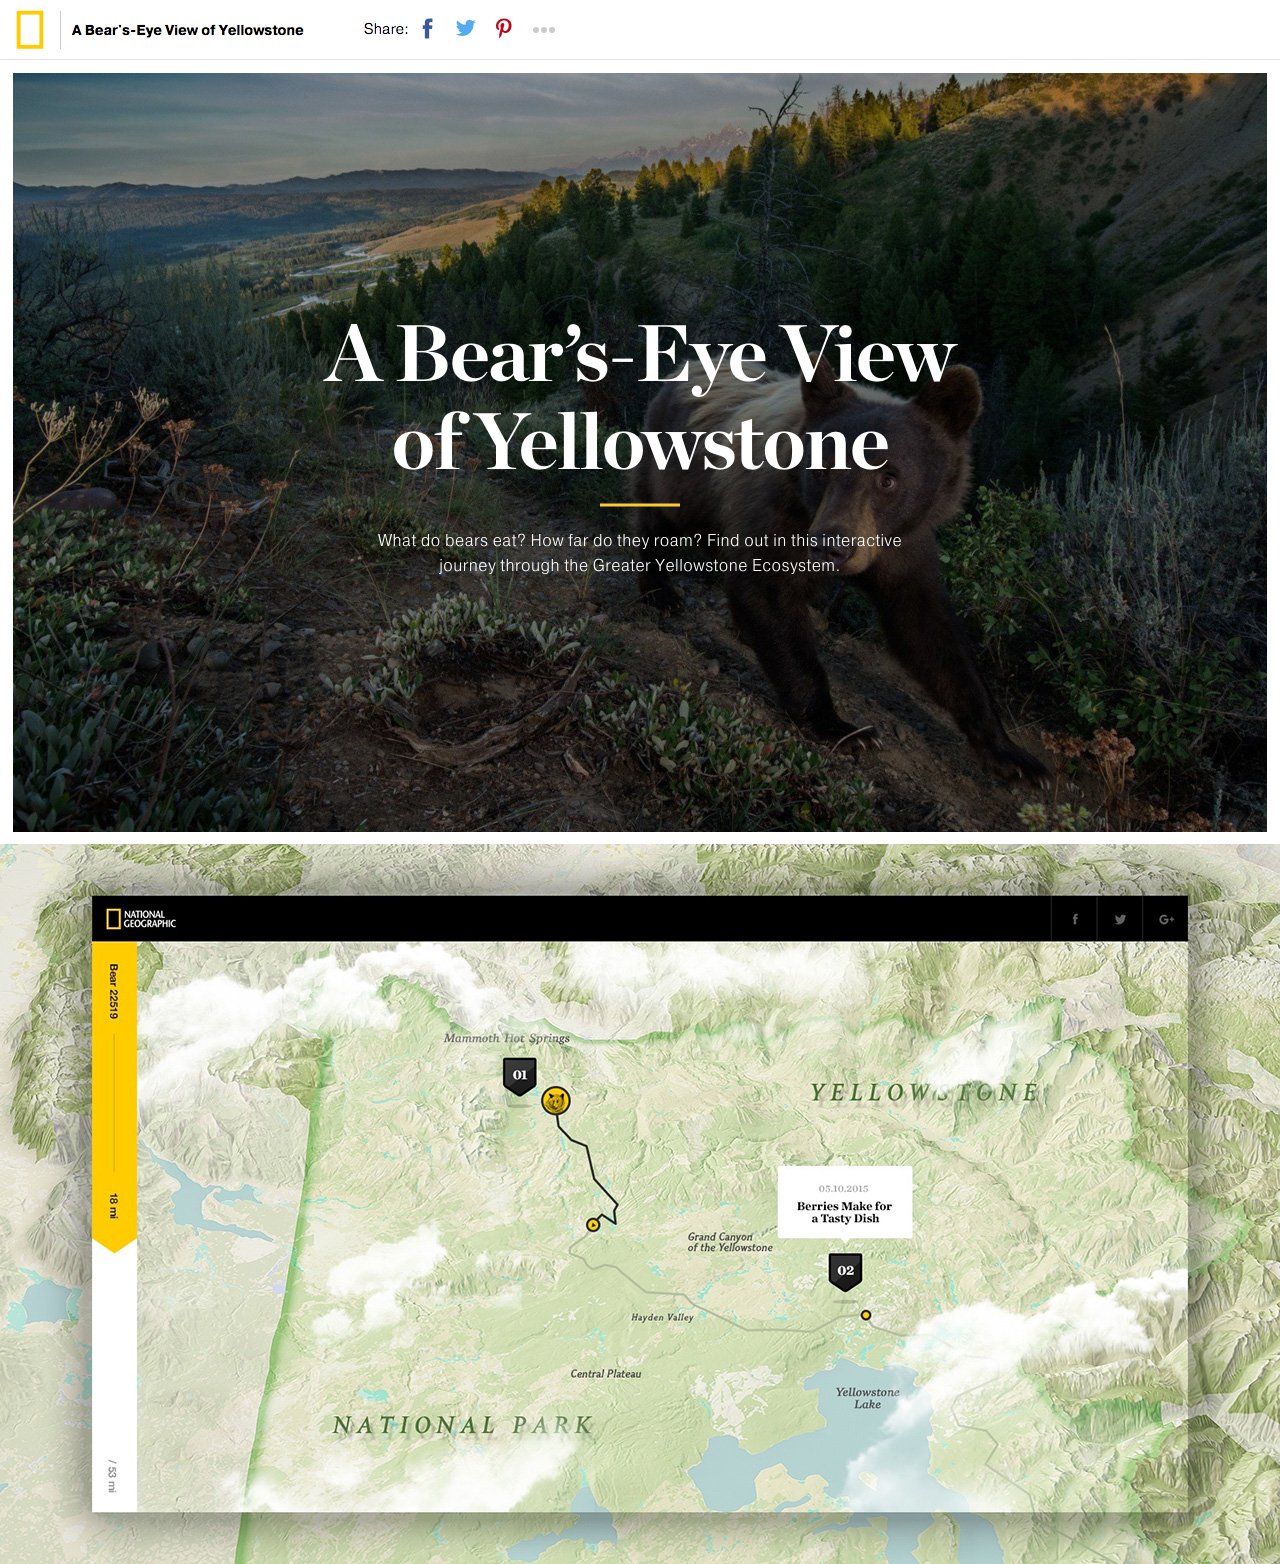 A Bear's-Eye View of Yellowstone Website Screenshot